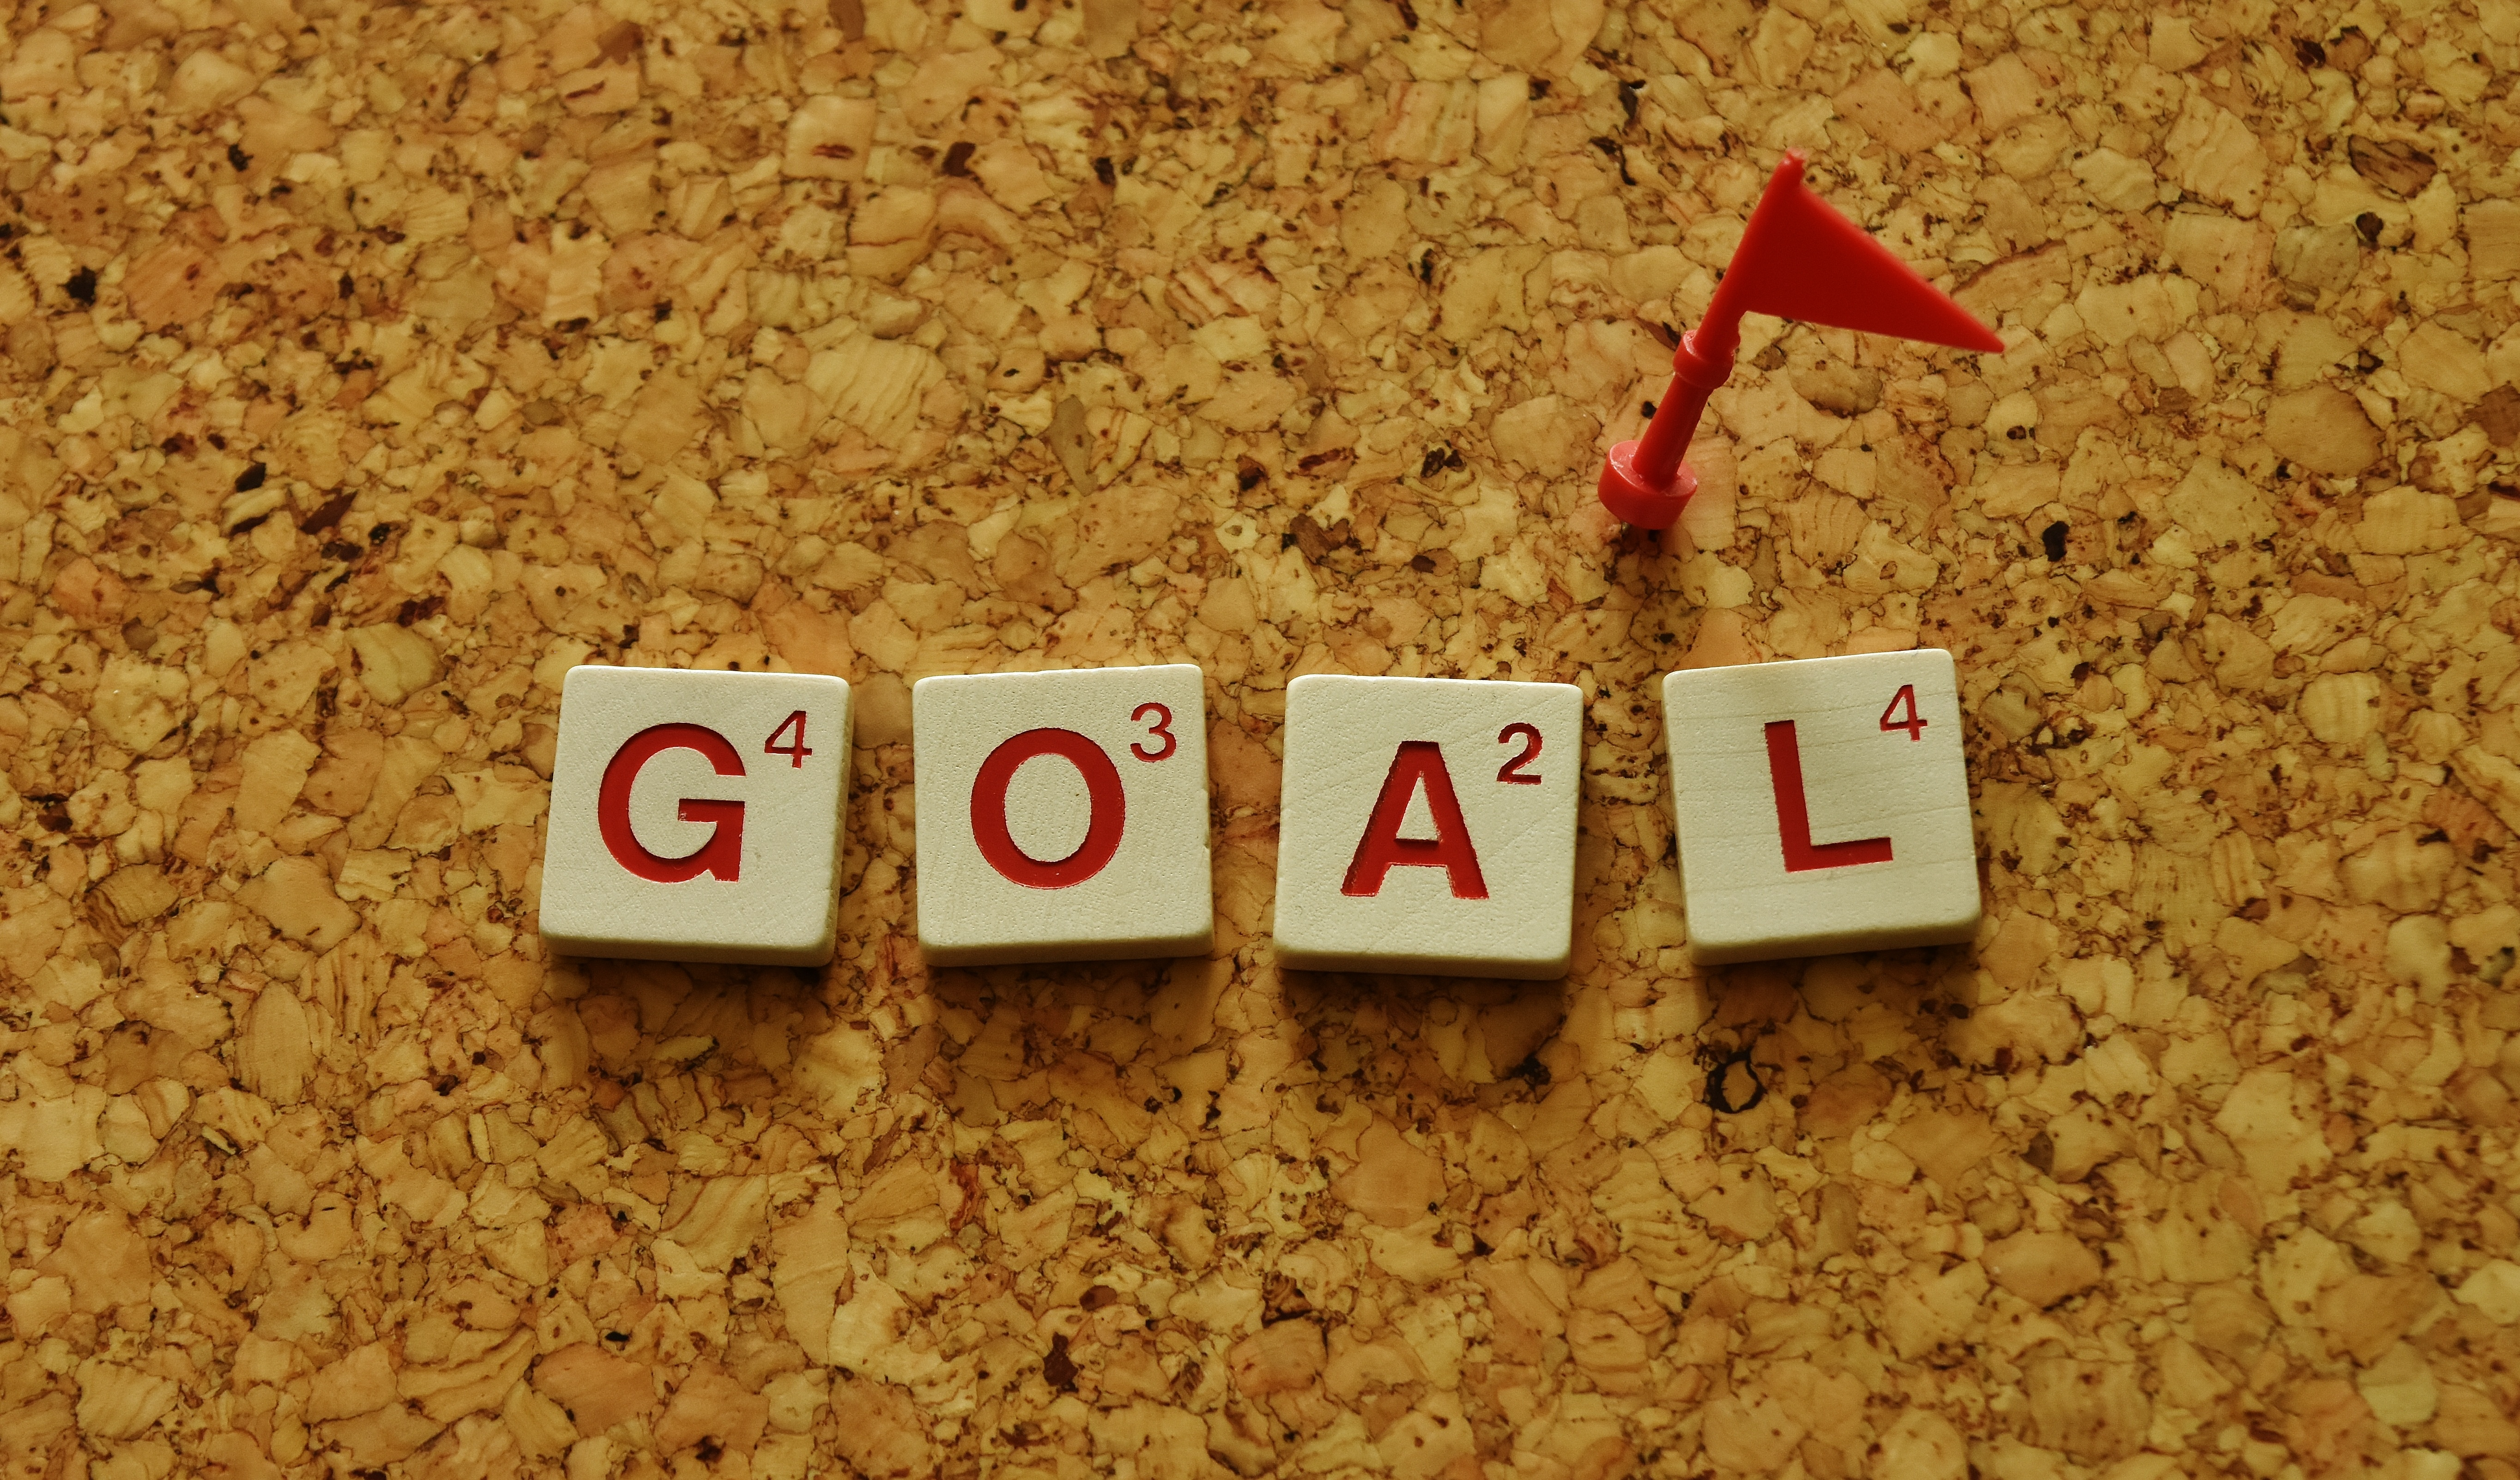 Goals spelled out in red Scrabble tiles